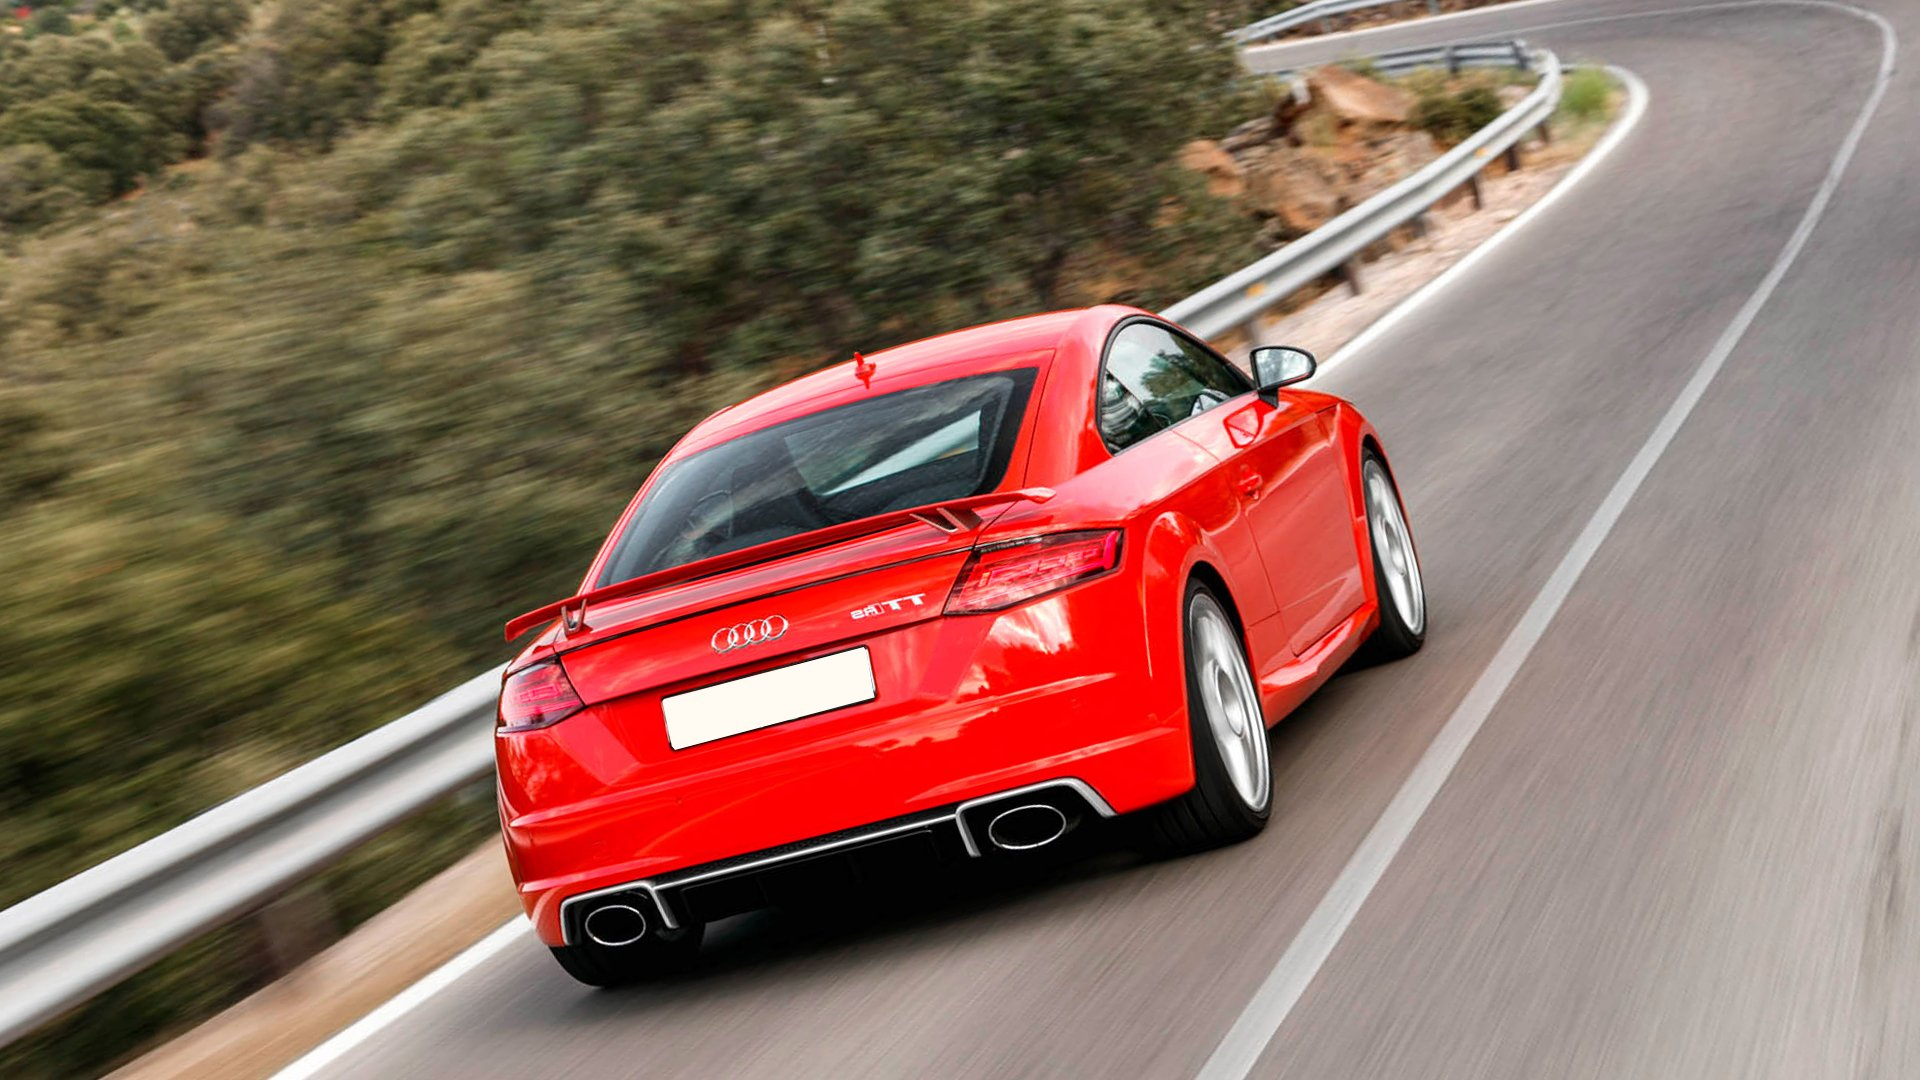 New Review 2019 Audi TT Wallpaper HD Desktop